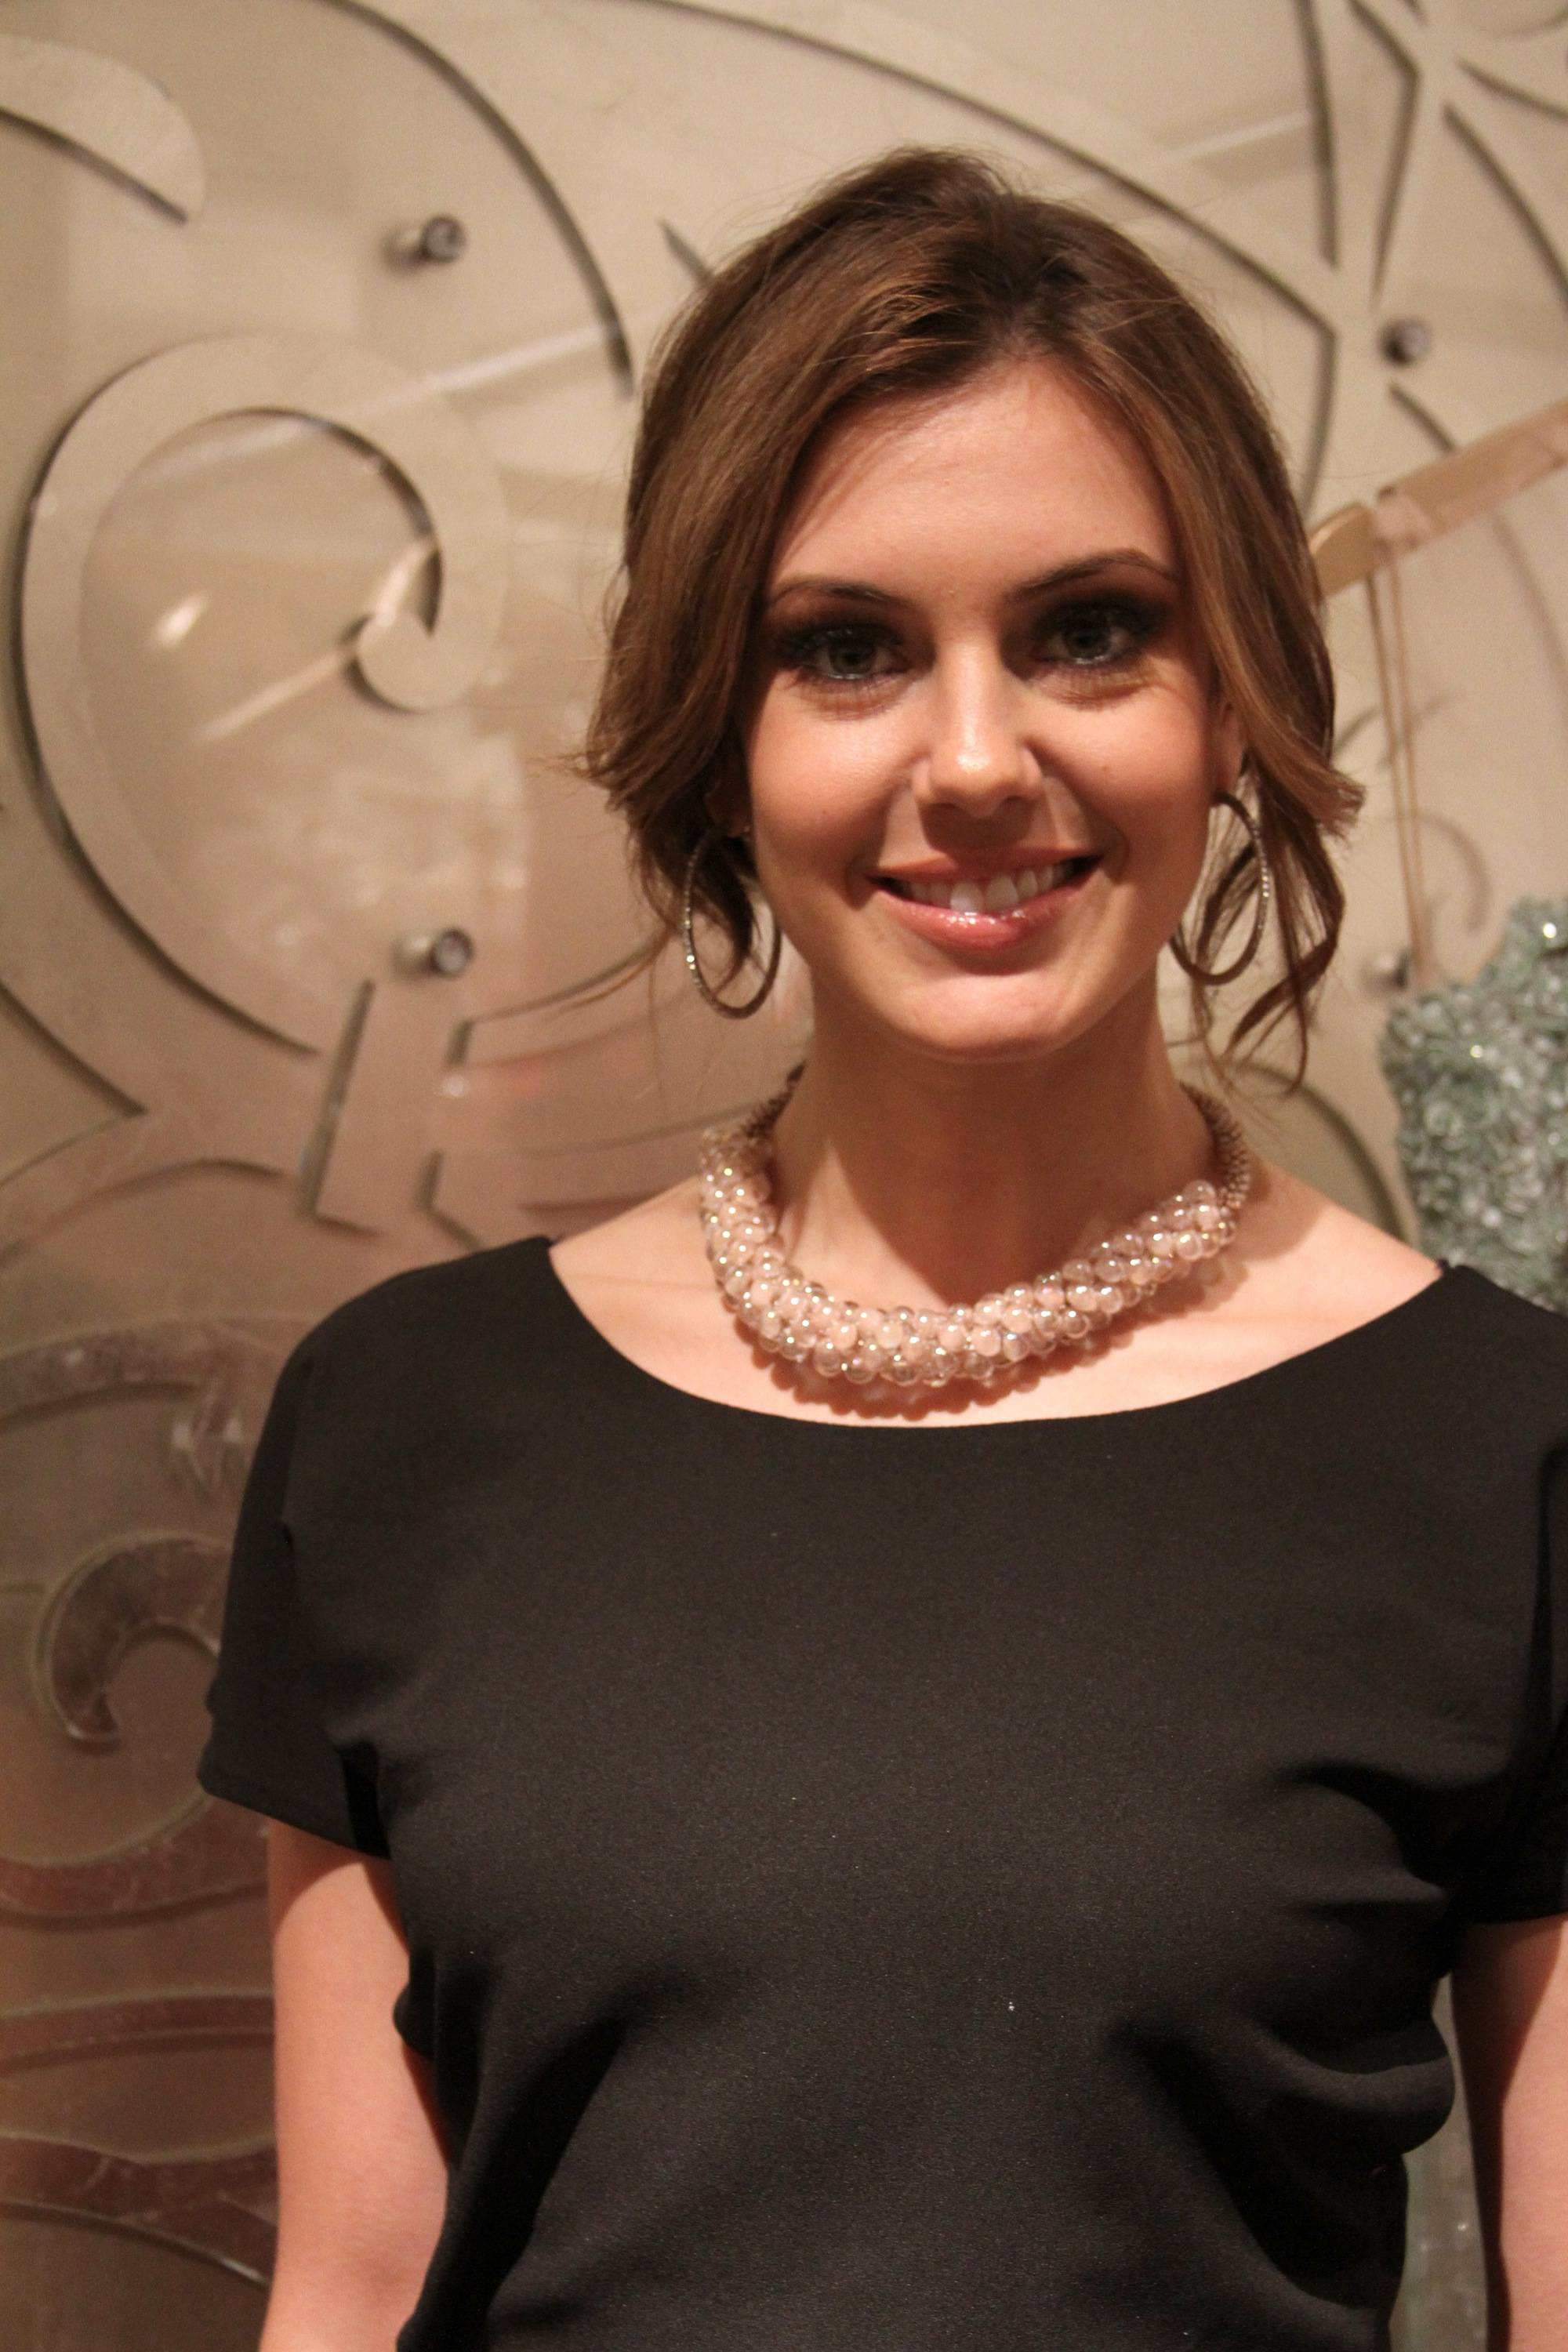 MISS USA 2013 ERIN BRADY IN NUDE PEARL SKY NECKLACE